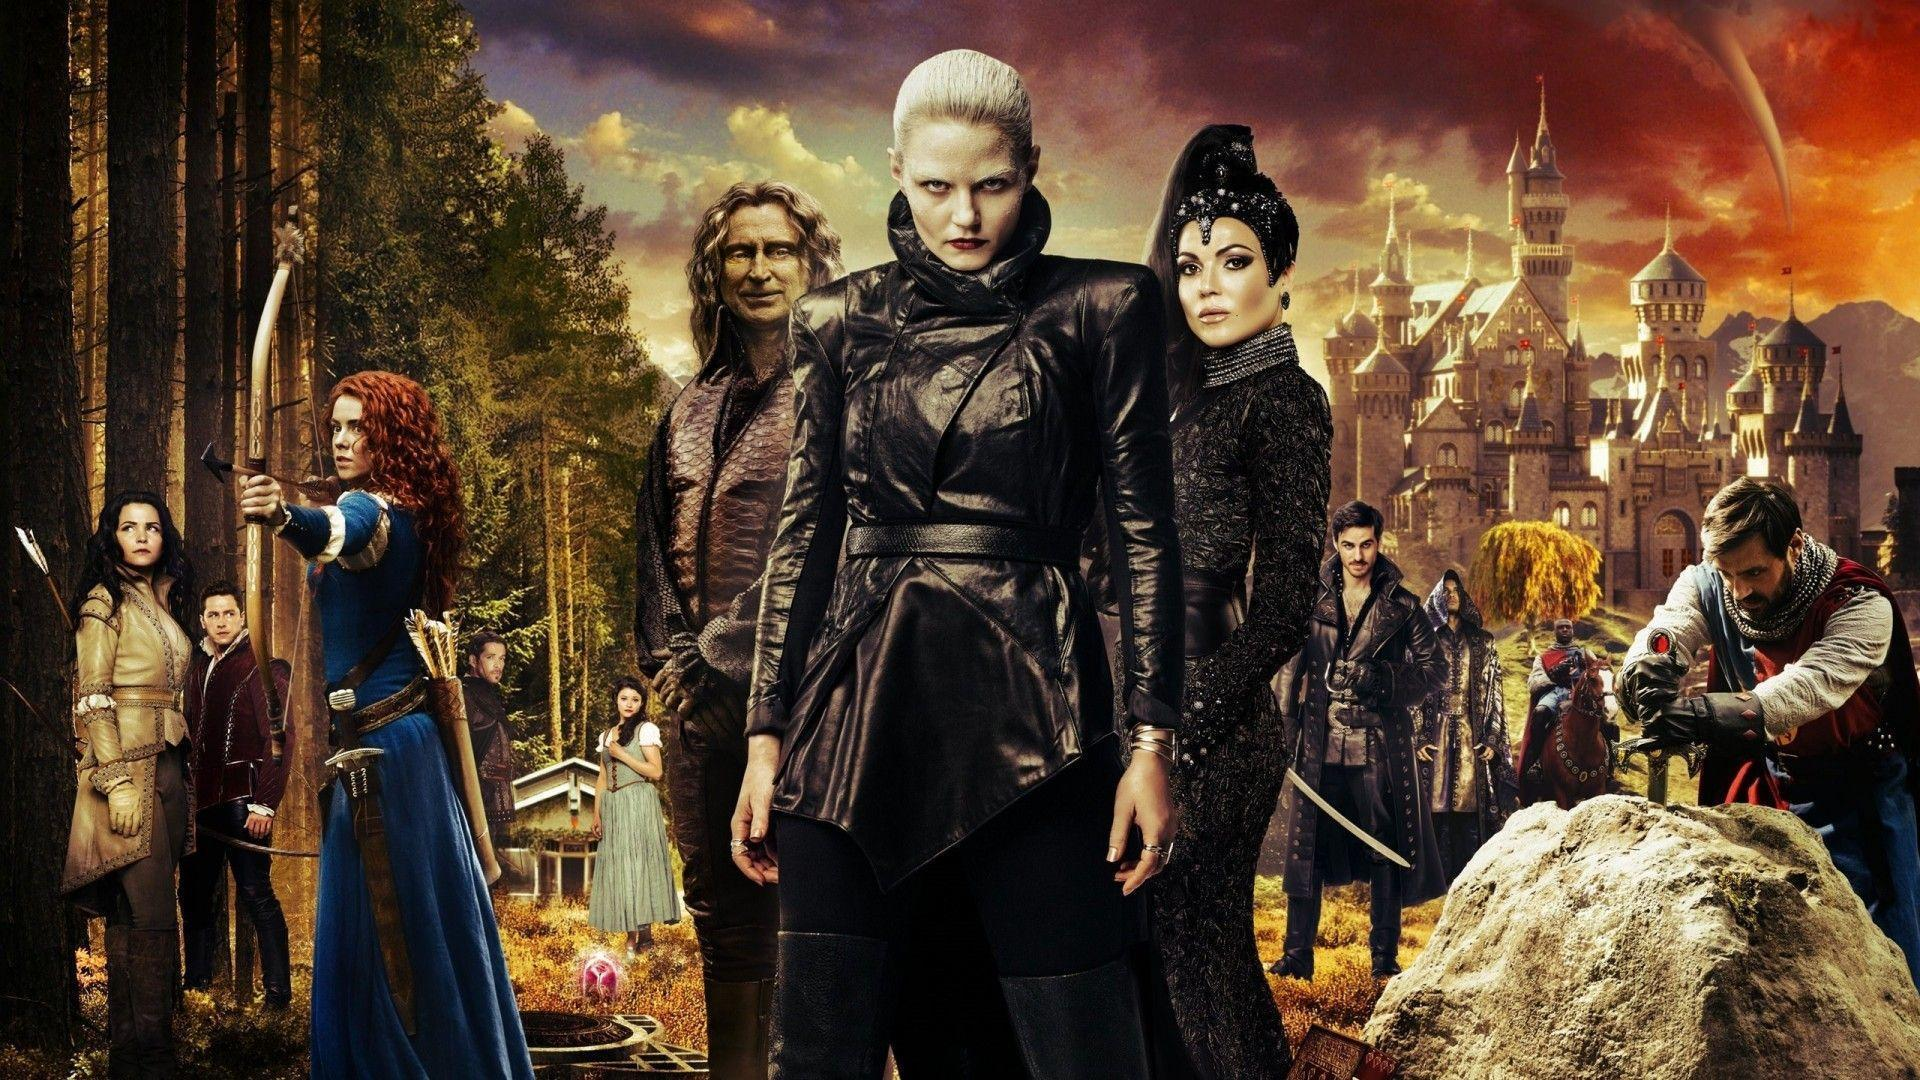 Once Upon a Time Season 5 Wallpapers | HD Wallpapers